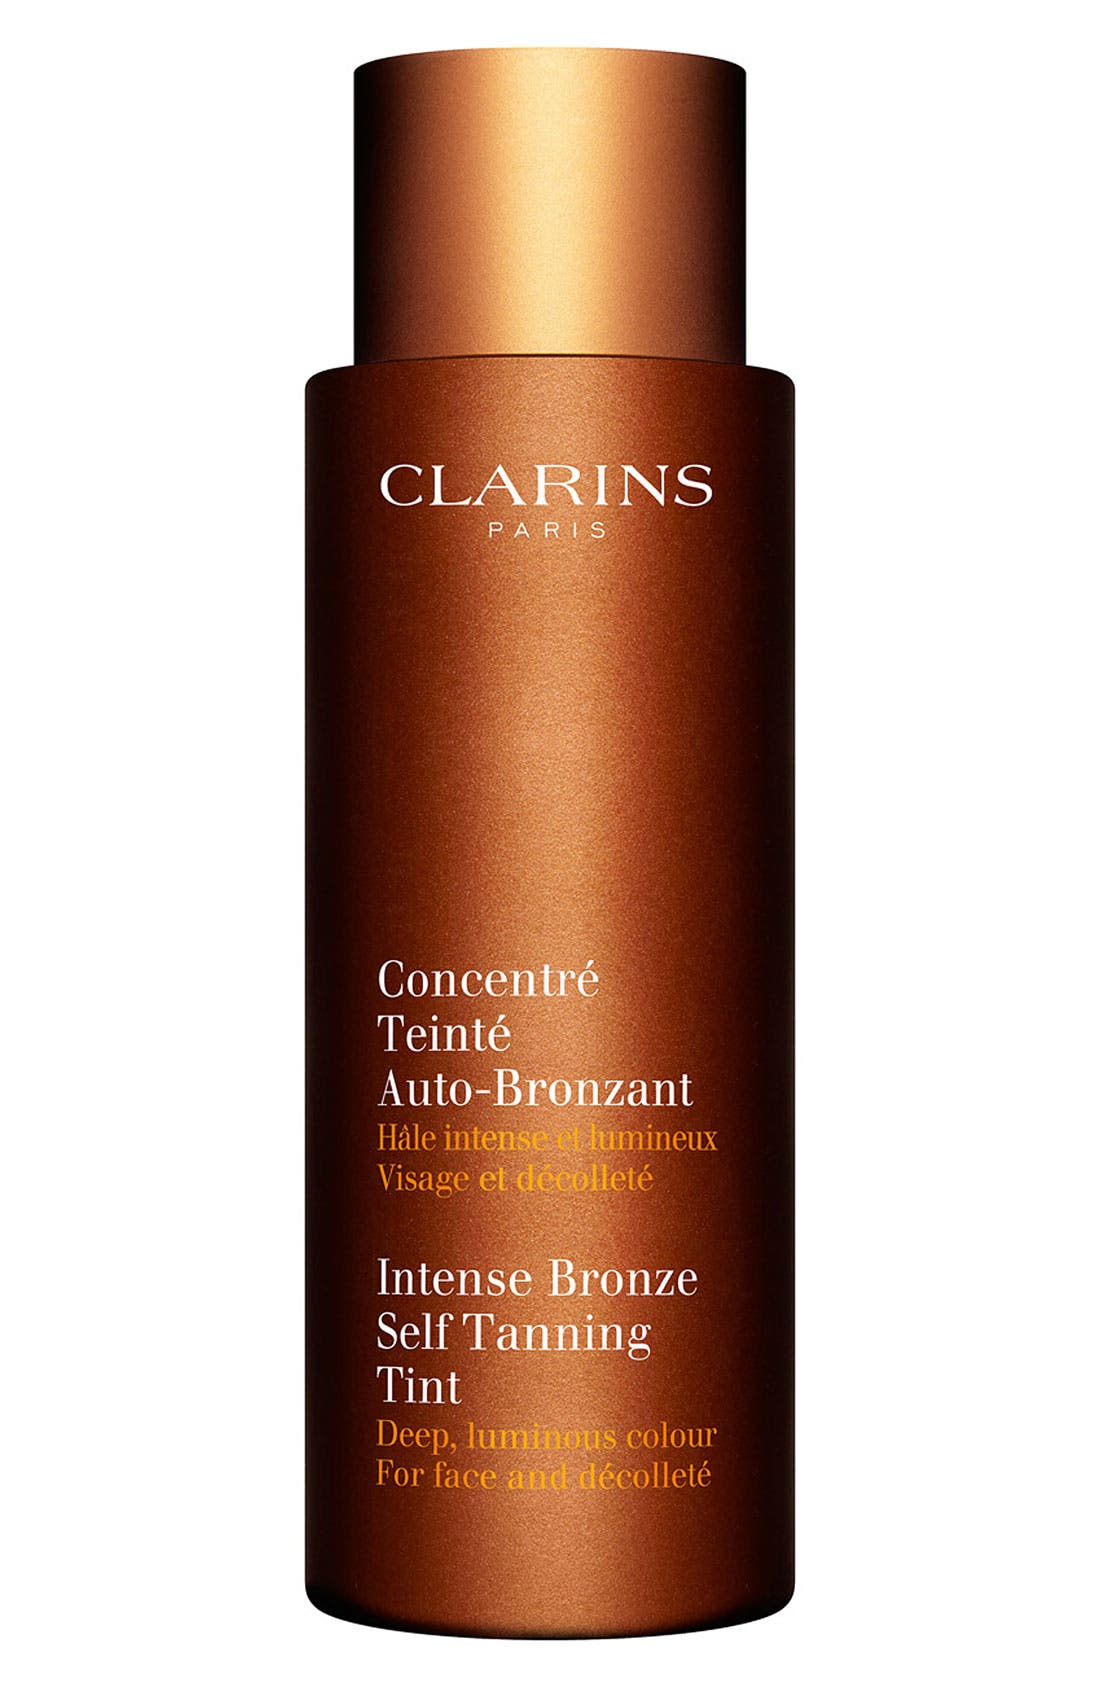 Intense Bronze Self Tanning Tint,                             Main thumbnail 1, color,                             000